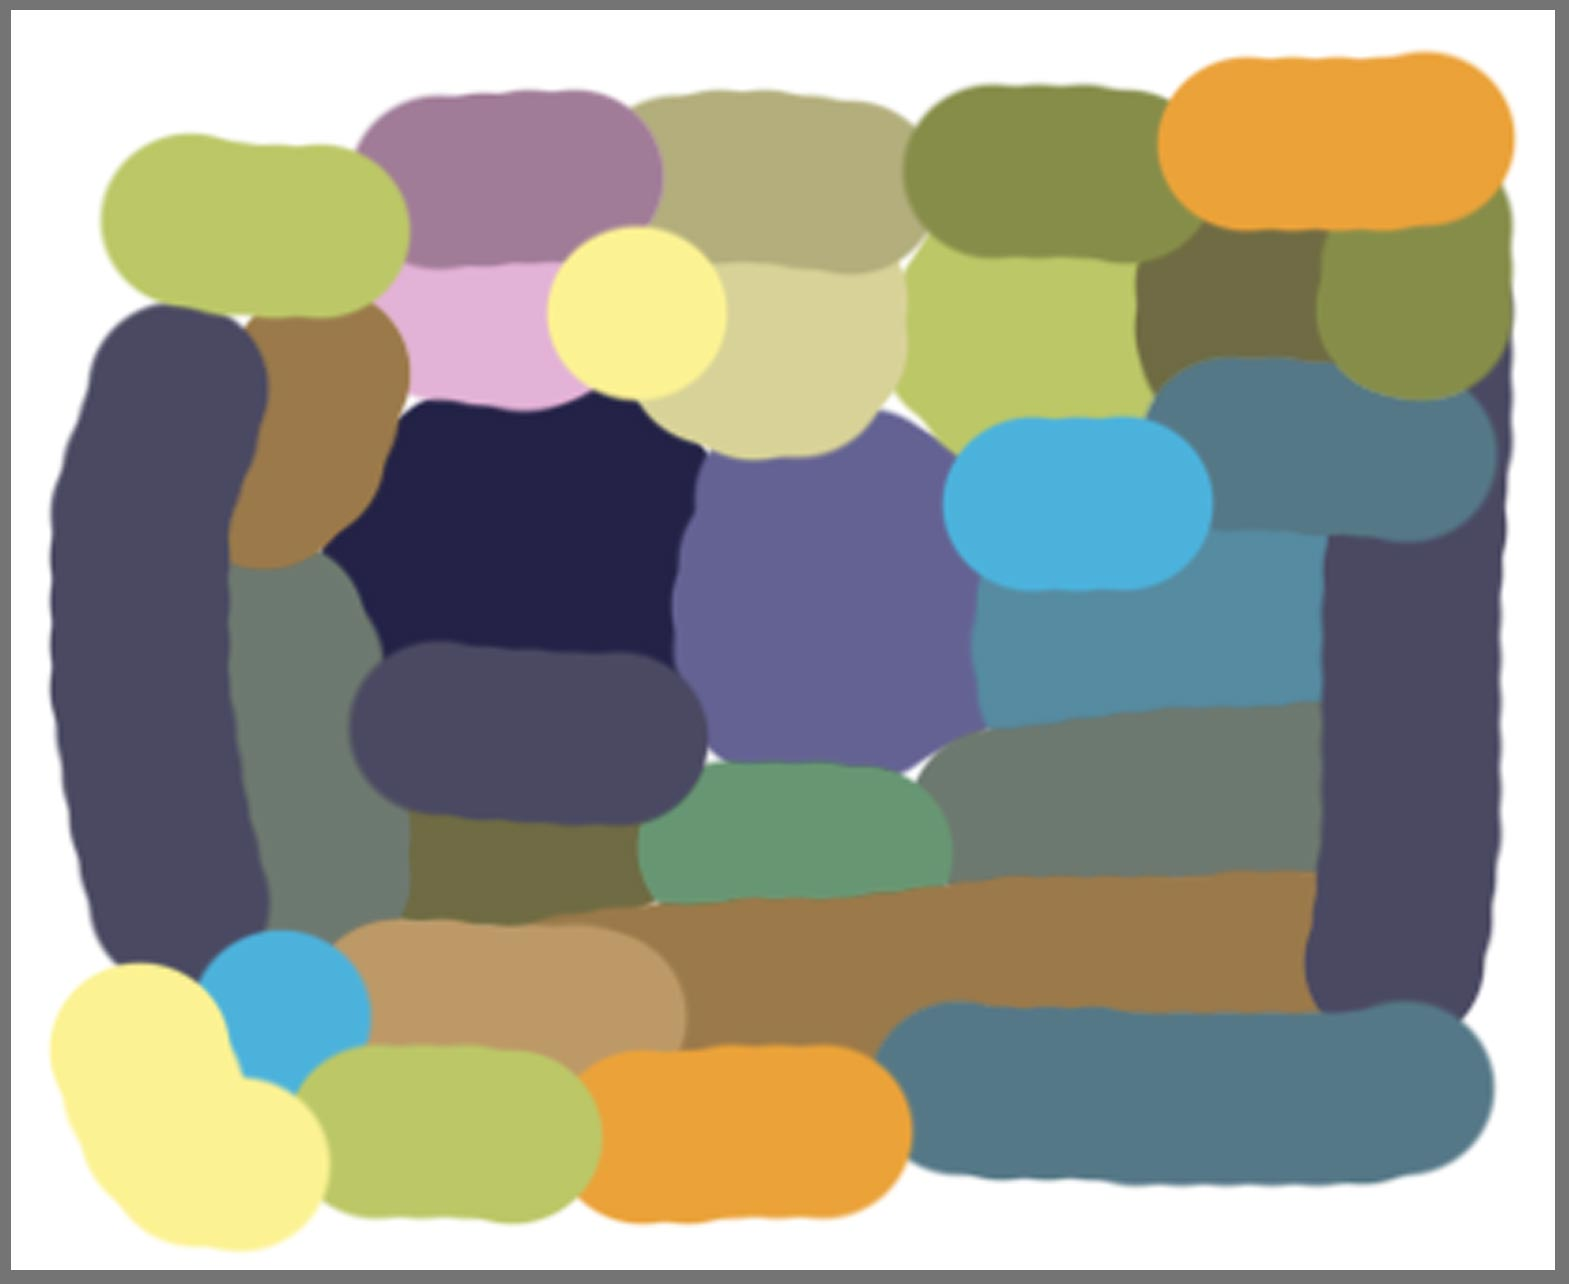 A new Niwot color palette for an abstract painting ...